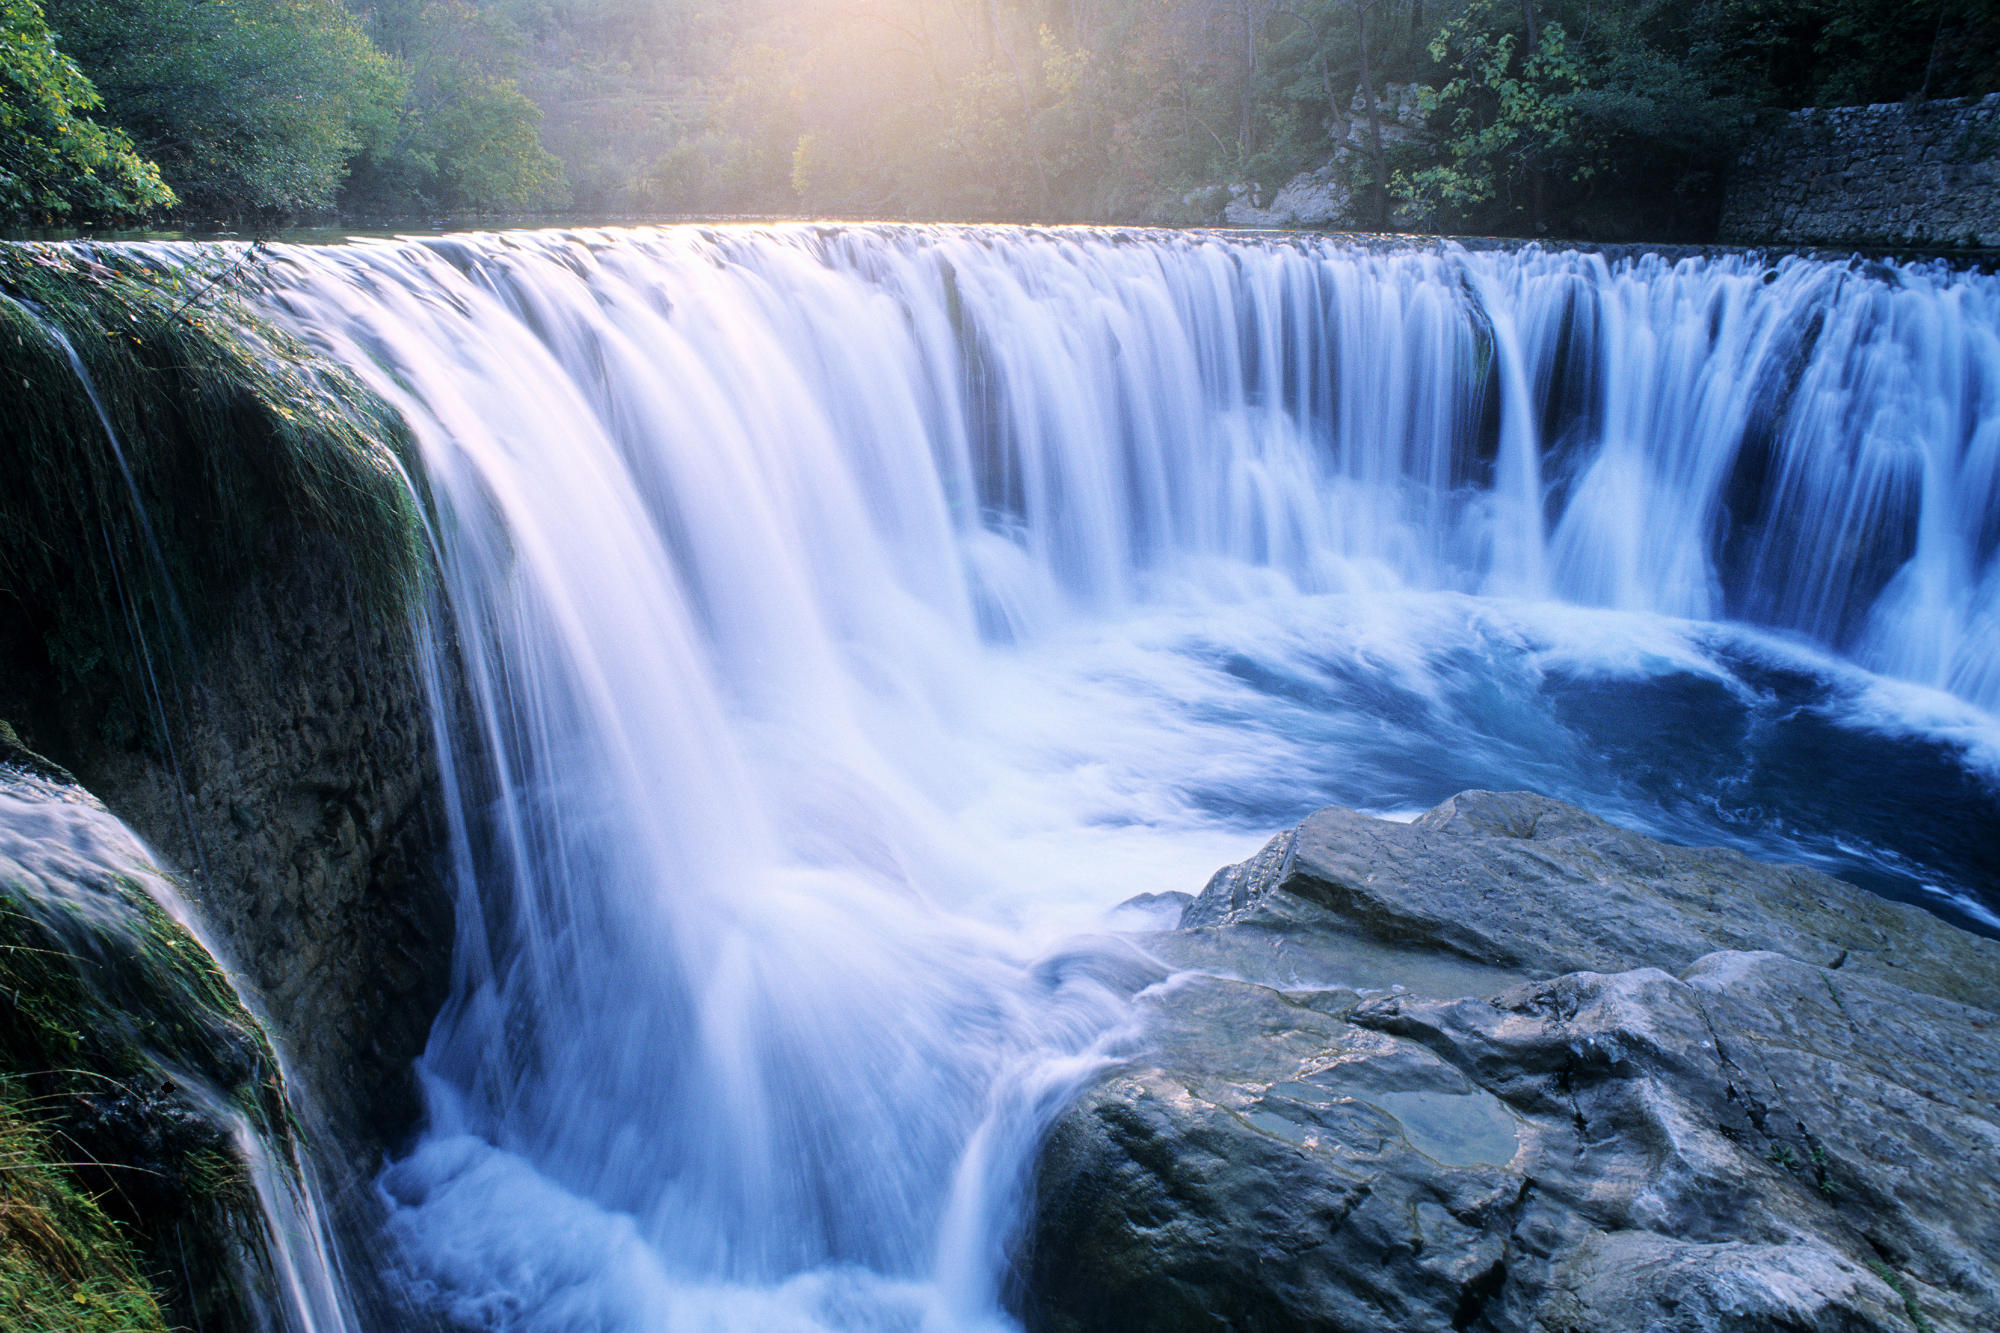 Waterfall Light & Love to yourself and all Life. This is a joyous way to enhance the reality we live in.